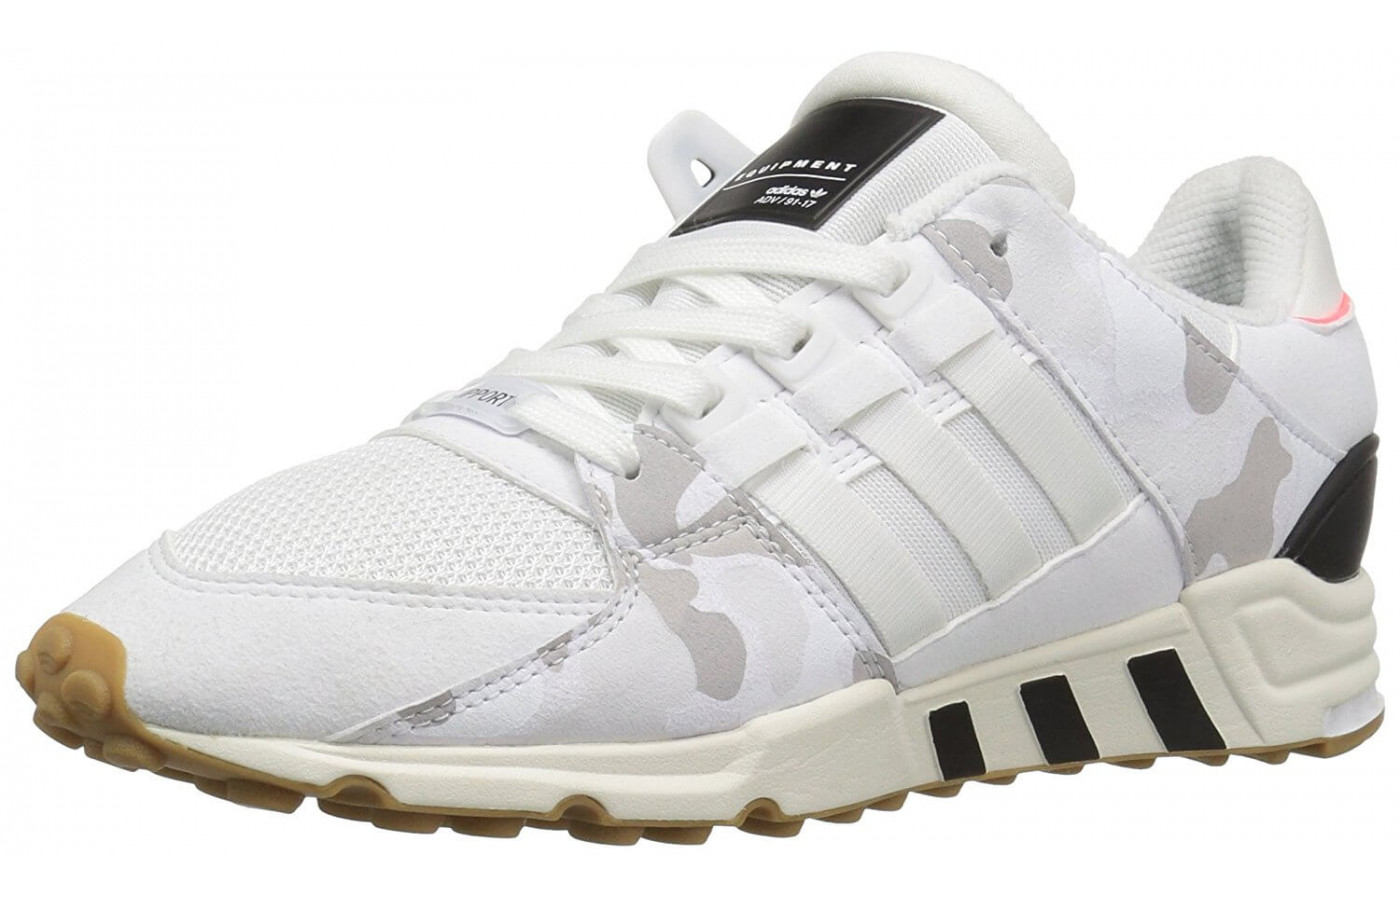 c01458bea0c290 Adidas EQT Support RF Review - Buy or Not in Mar 2019